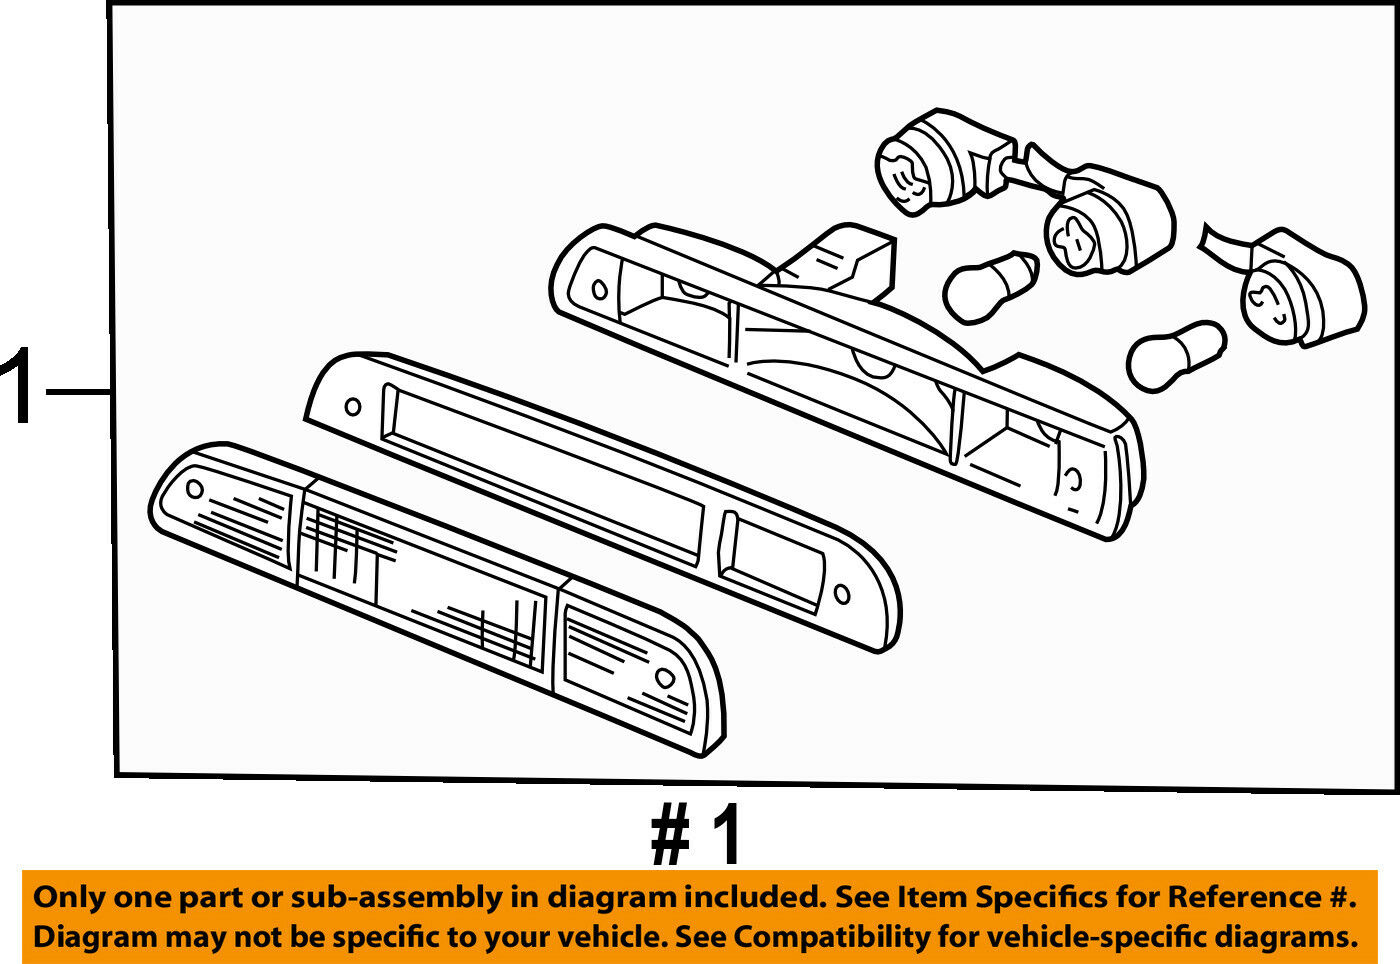 Ford Oem F 350 Super Duty High Mount 3rd Third Brake Light Lamp 2009 F250 Thru 550 Wiring Diagram Manual Original 1 Of 2only Available